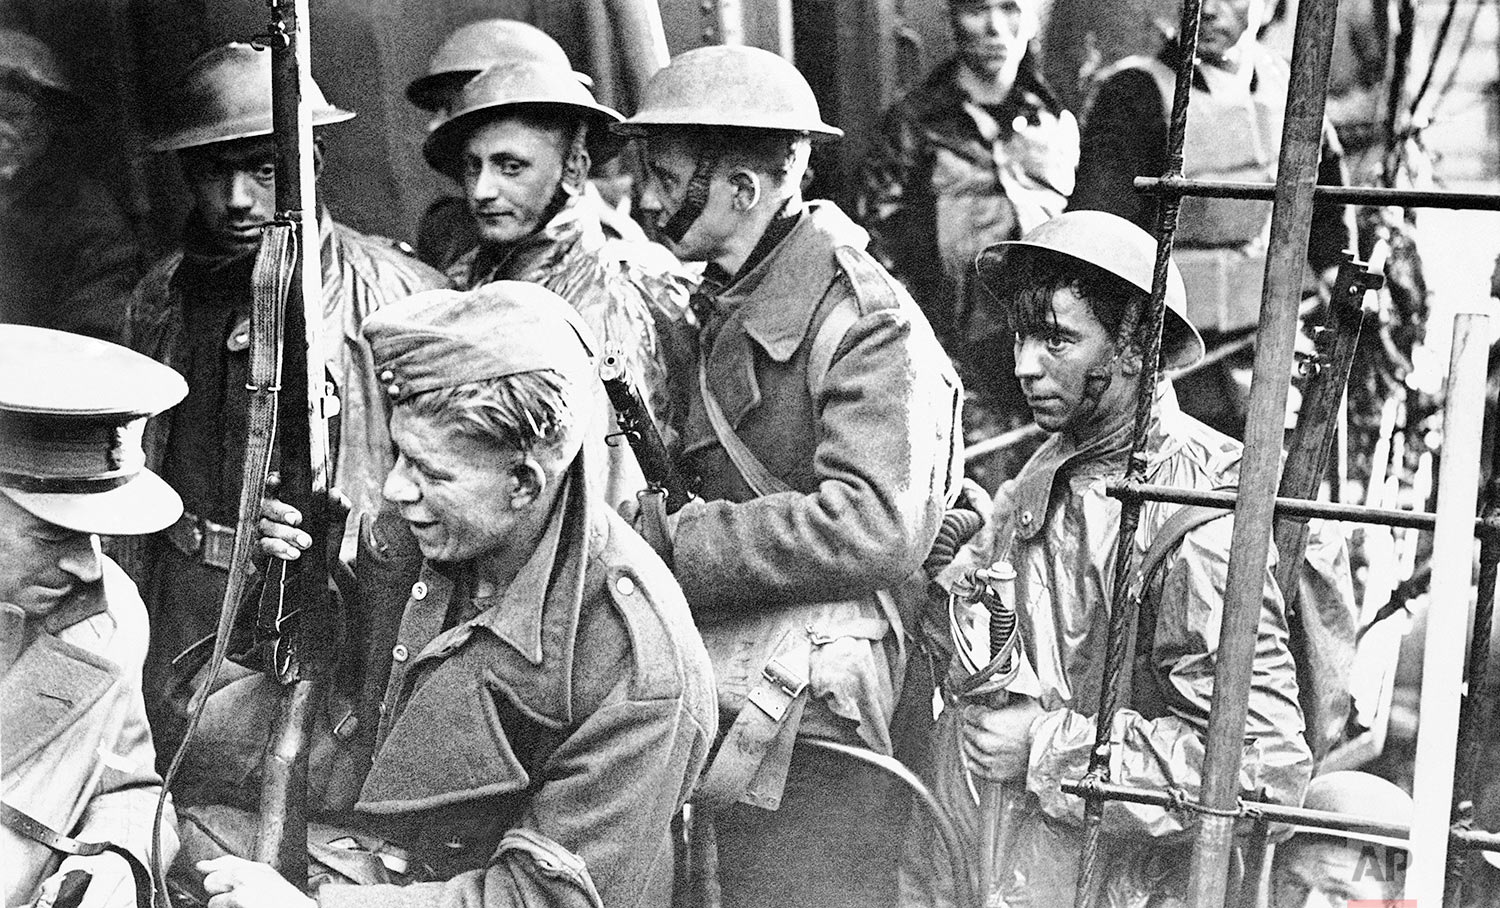 British expeditionary troops arriving home from Dunkirk, somewhere near the English coast, June 6, 1940. (AP Photo)